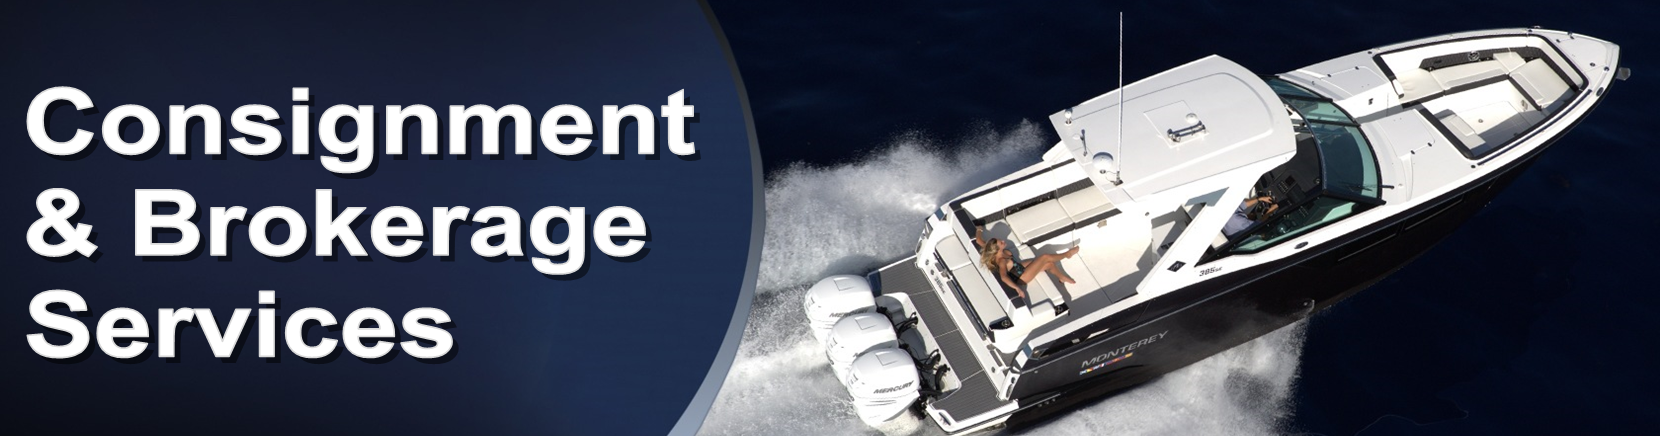 Consignment and Brokerage Services